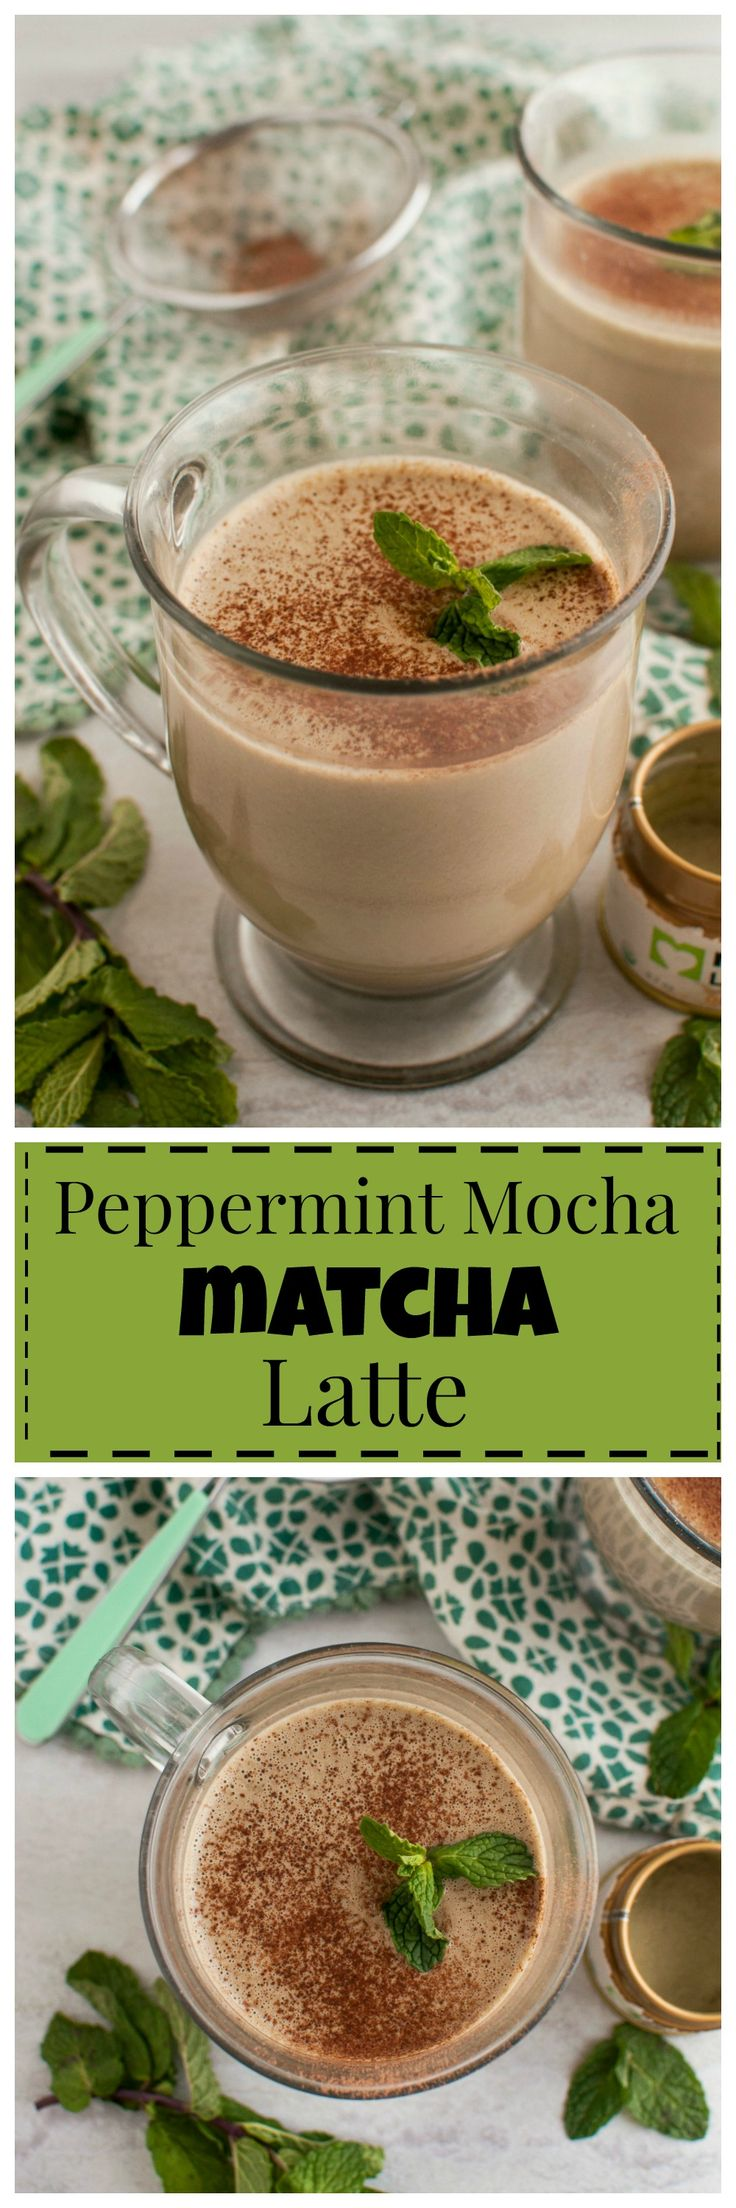 Peppermint Mocha Matcha Latte #vegan #paleo #clean #realfood